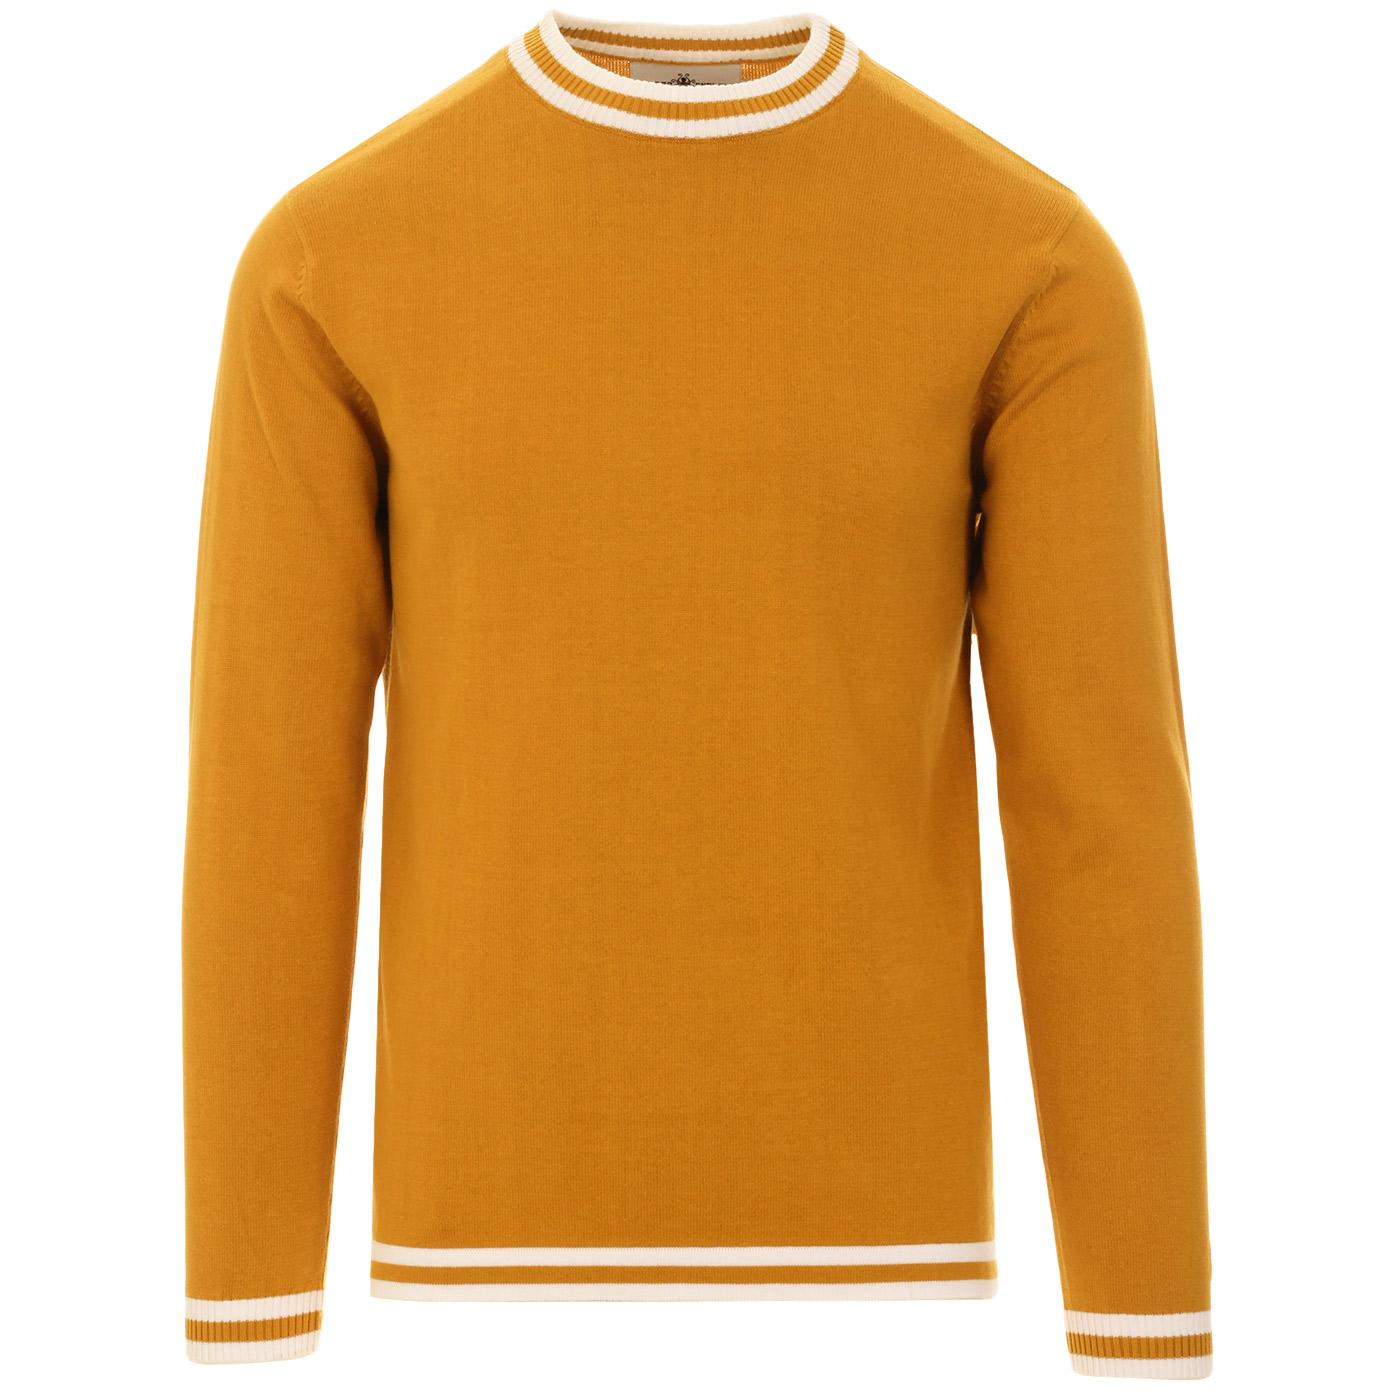 Madcap England Long Sleeve 60s Mod Moon Tipped Knit Jumper in Harvest Gold